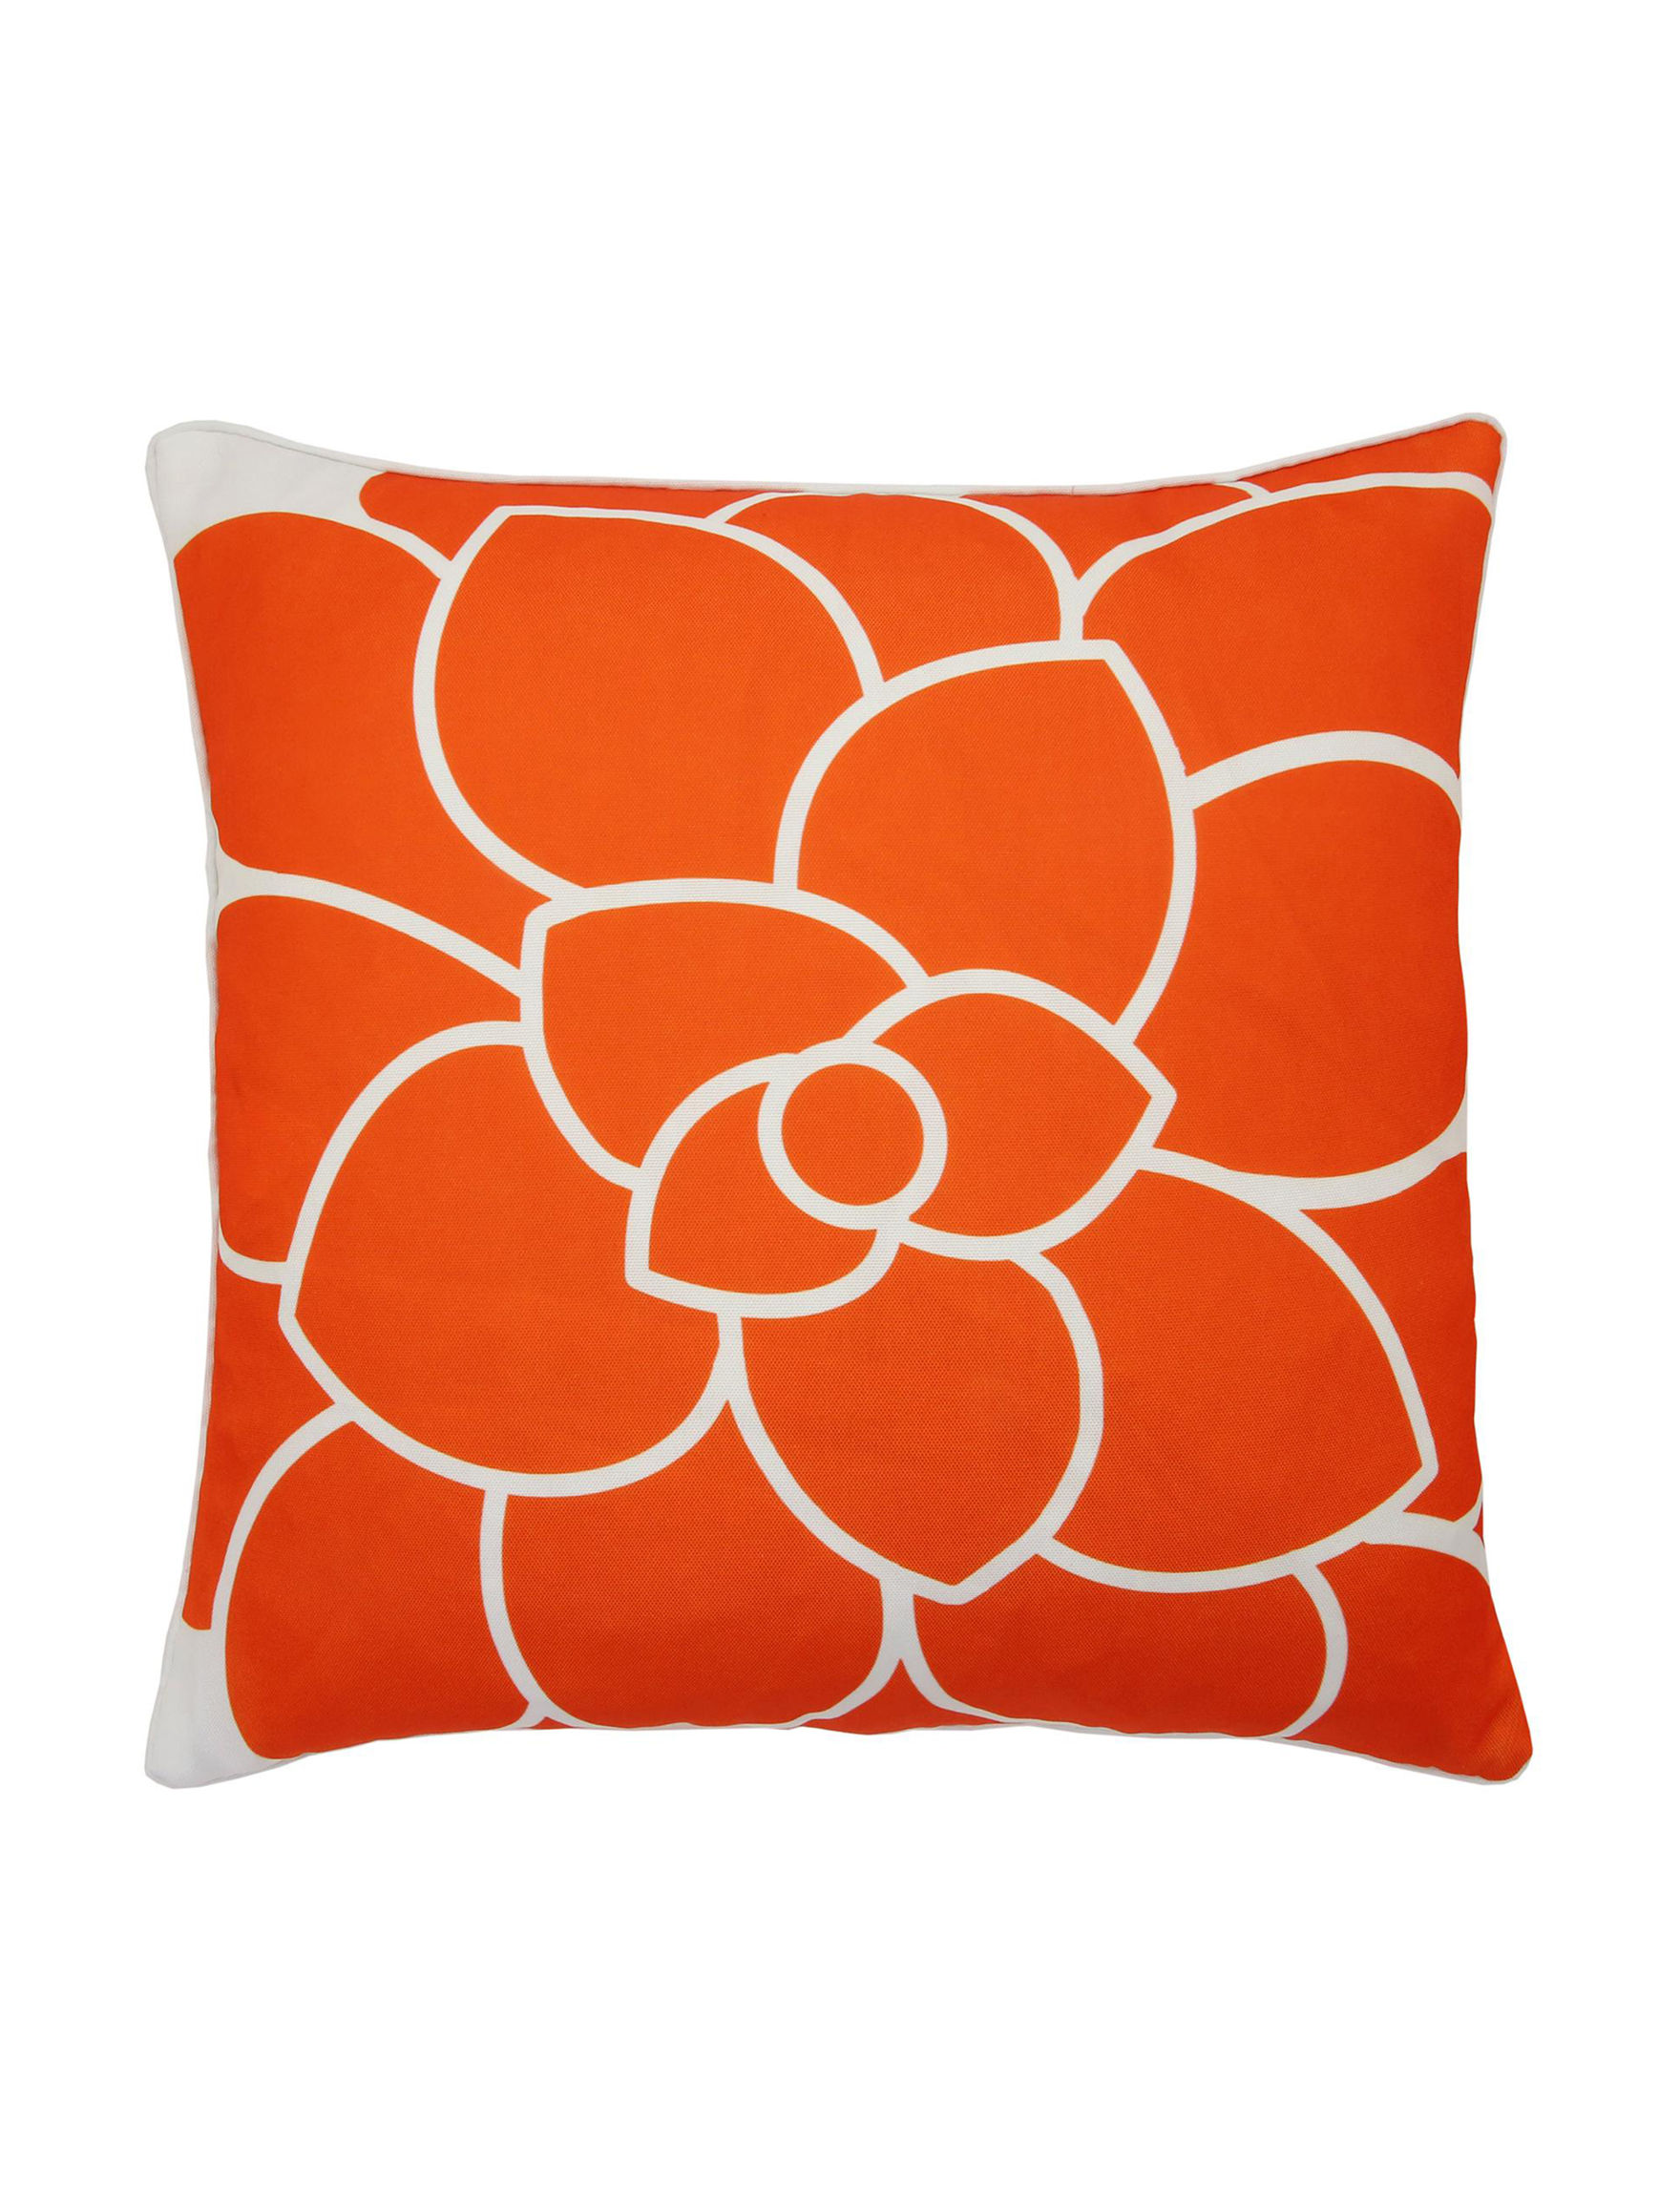 Lush Decor Orange Decorative Pillows